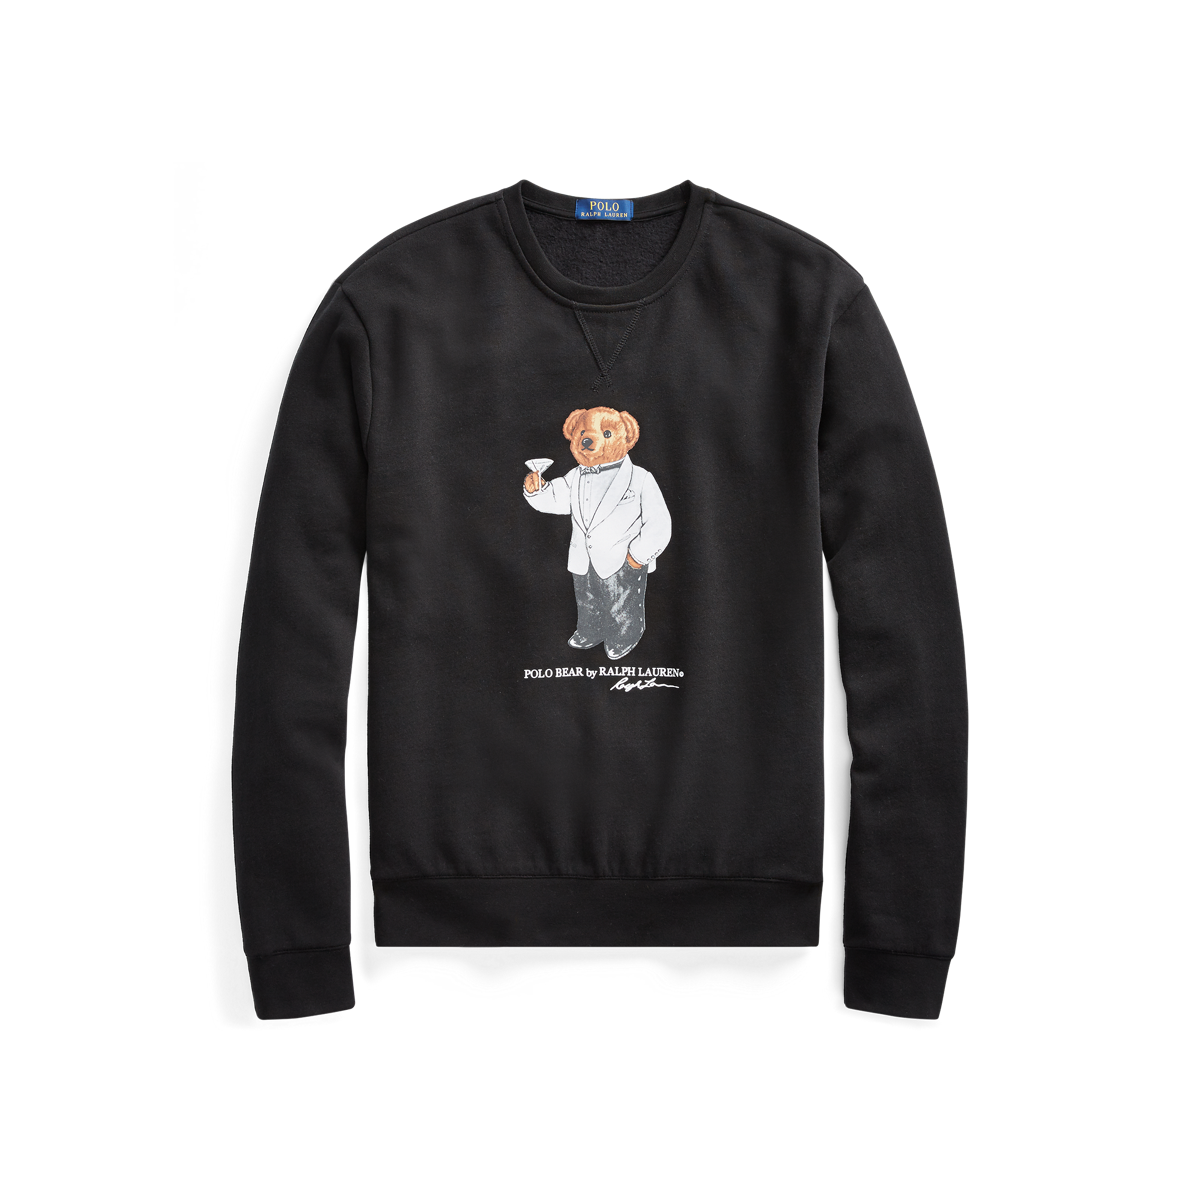 Fr Fr Martini Bear Bear SweatshirtRalph Martini Lauren Martini SweatshirtRalph Lauren Bear 4ARjL5